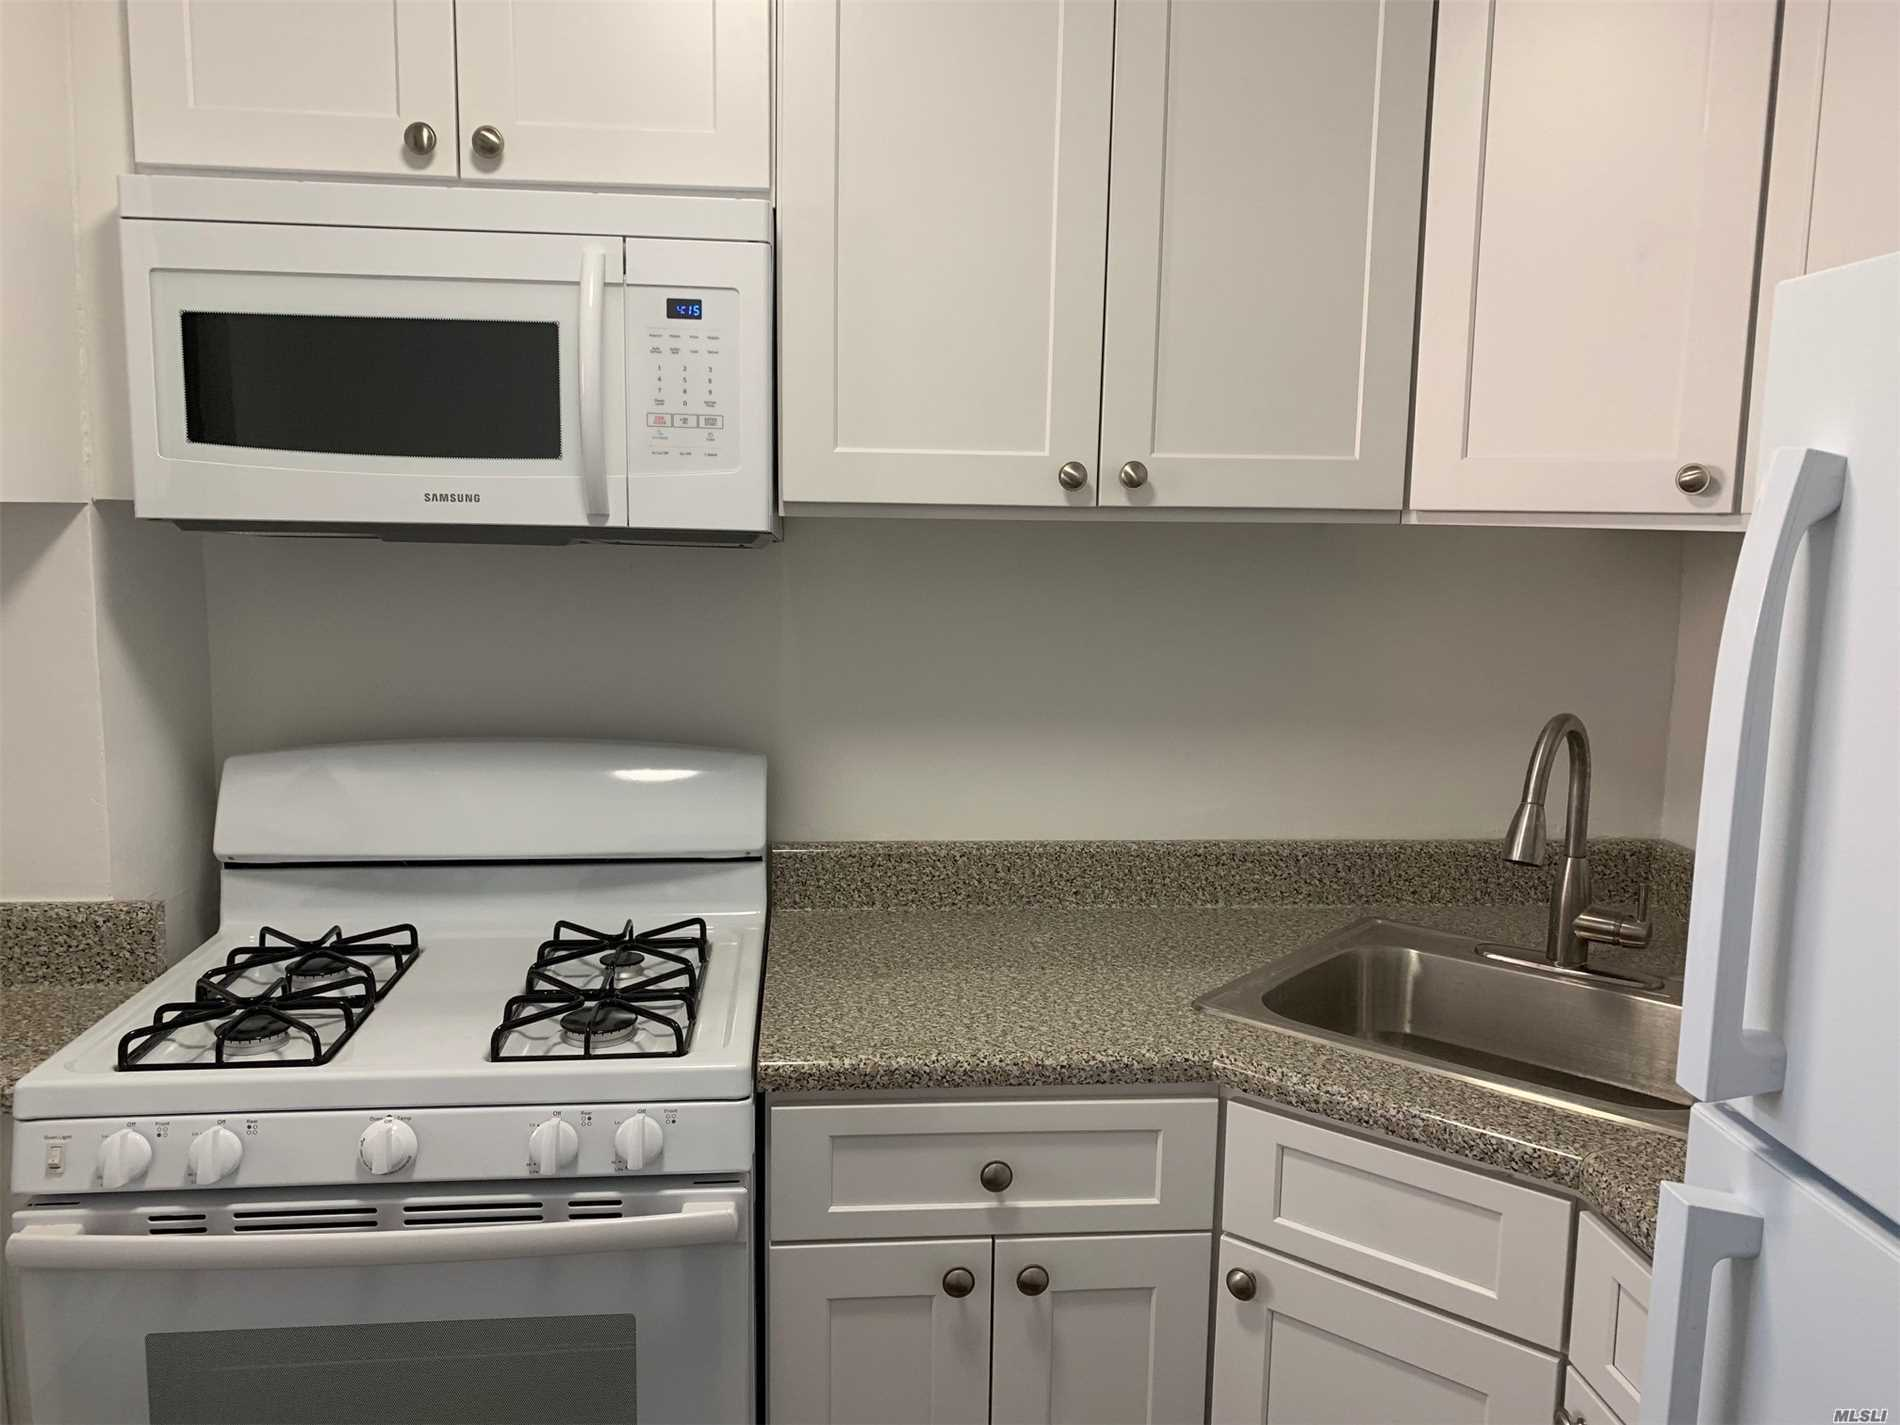 Lg One Br with New Kitchen Cabinets & Appliances..New W/W Ceramics Bath, Vanity & Mirrors, New Floors In Lg 1Br & 1Bath At The Prestige Coop Complex Of Park City Estates. 24 Hr Security Gate And 16 Hr Doorman W Terrace. Tanant Must Get The Board Approval With Credit Score Over 700 And Proven Income Over $70, 000. Hurry Up Will Not Last.